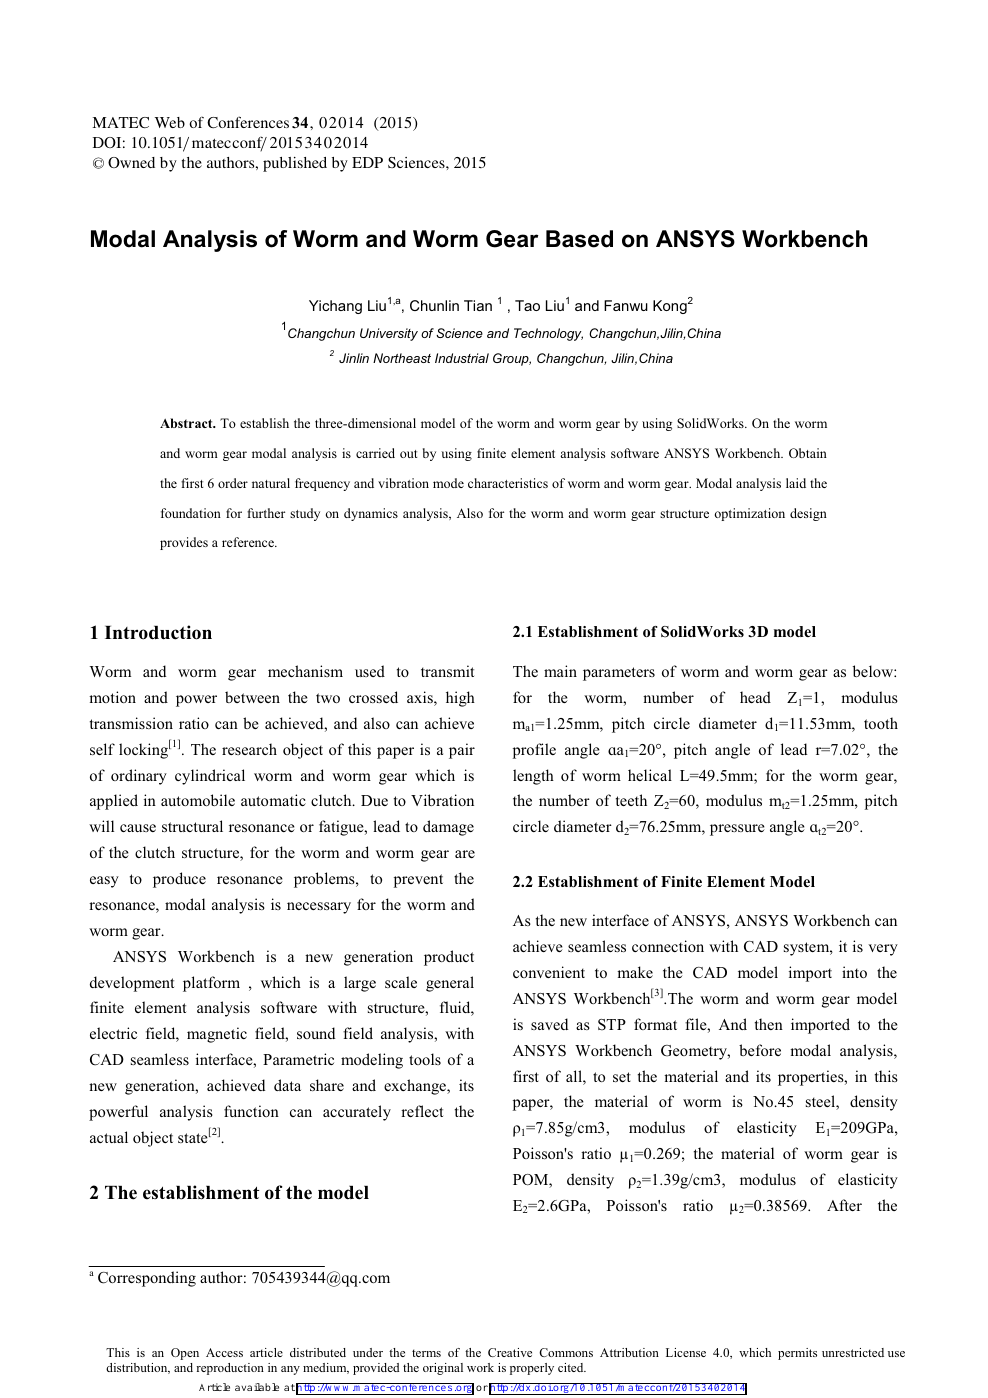 Modal Analysis of Worm and Worm Gear Based on ANSYS